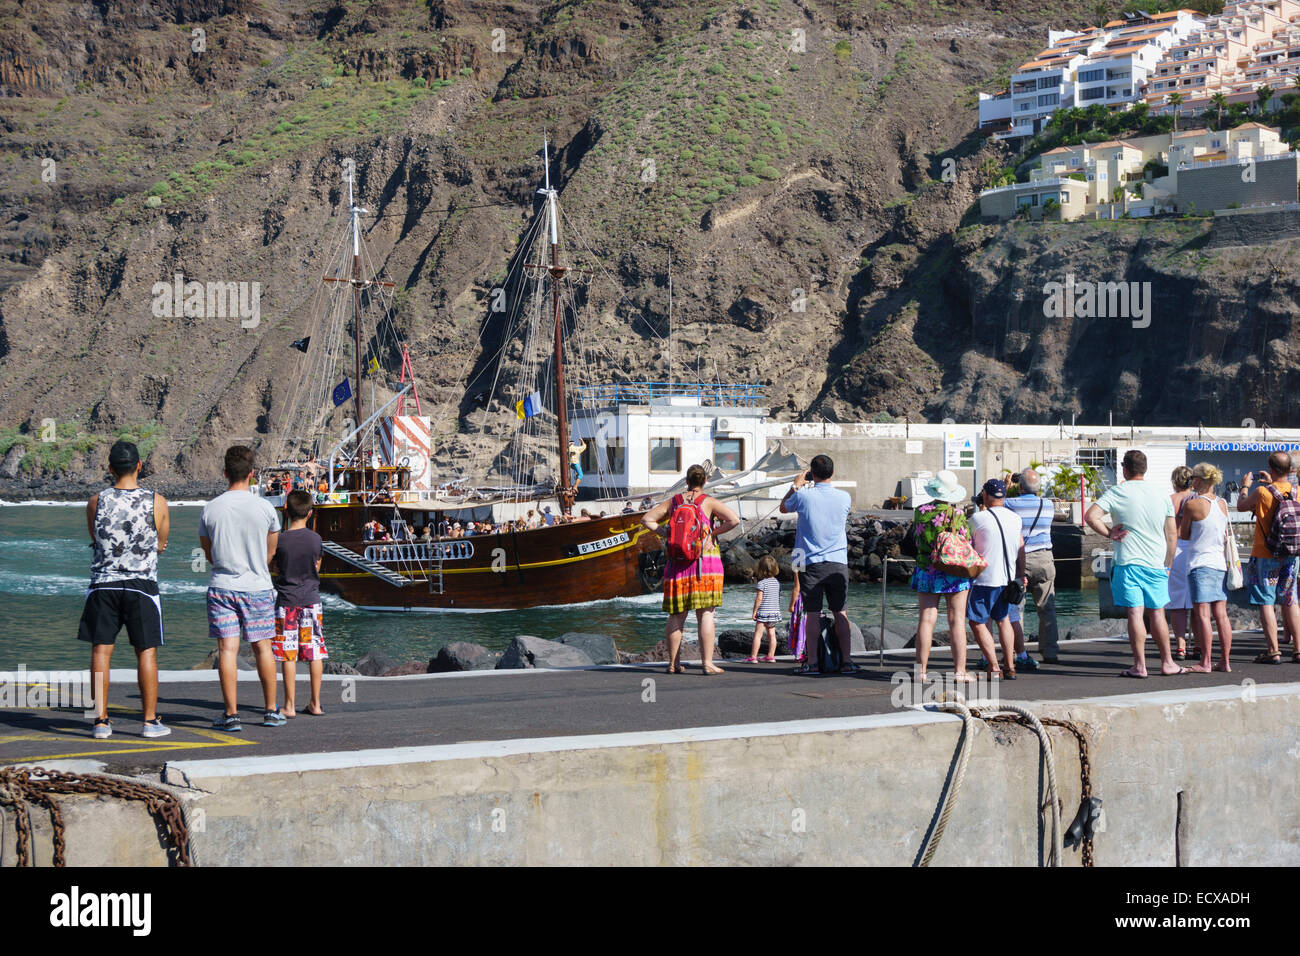 Tenerife - Los Gigantes. Queue waiting to board Flipper Uno dolphin watching boat excursion. - Stock Image